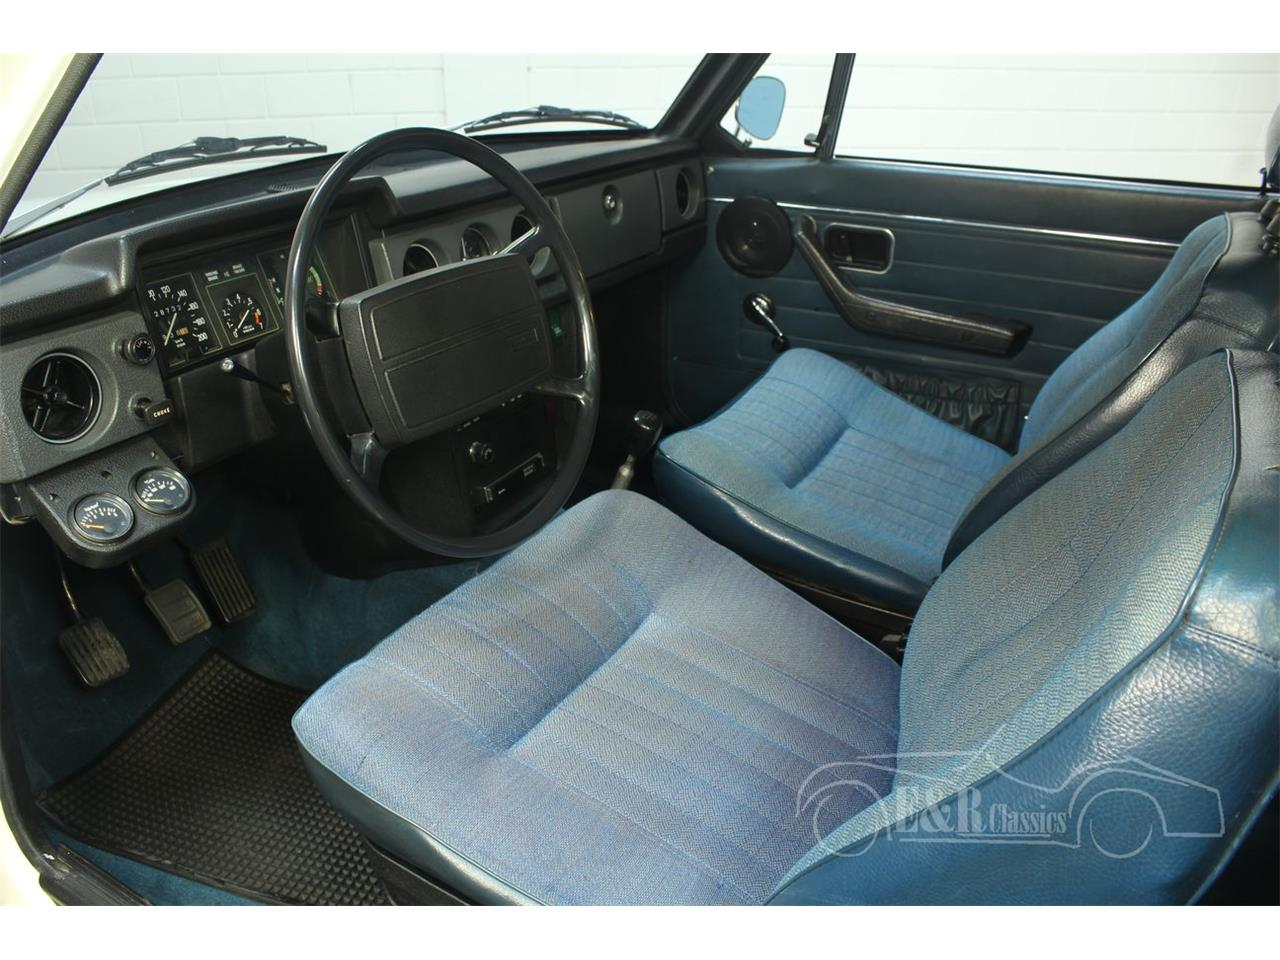 Large Picture of Classic '72 Volvo 142 located in noord brabant - $13,400.00 - Q3GJ